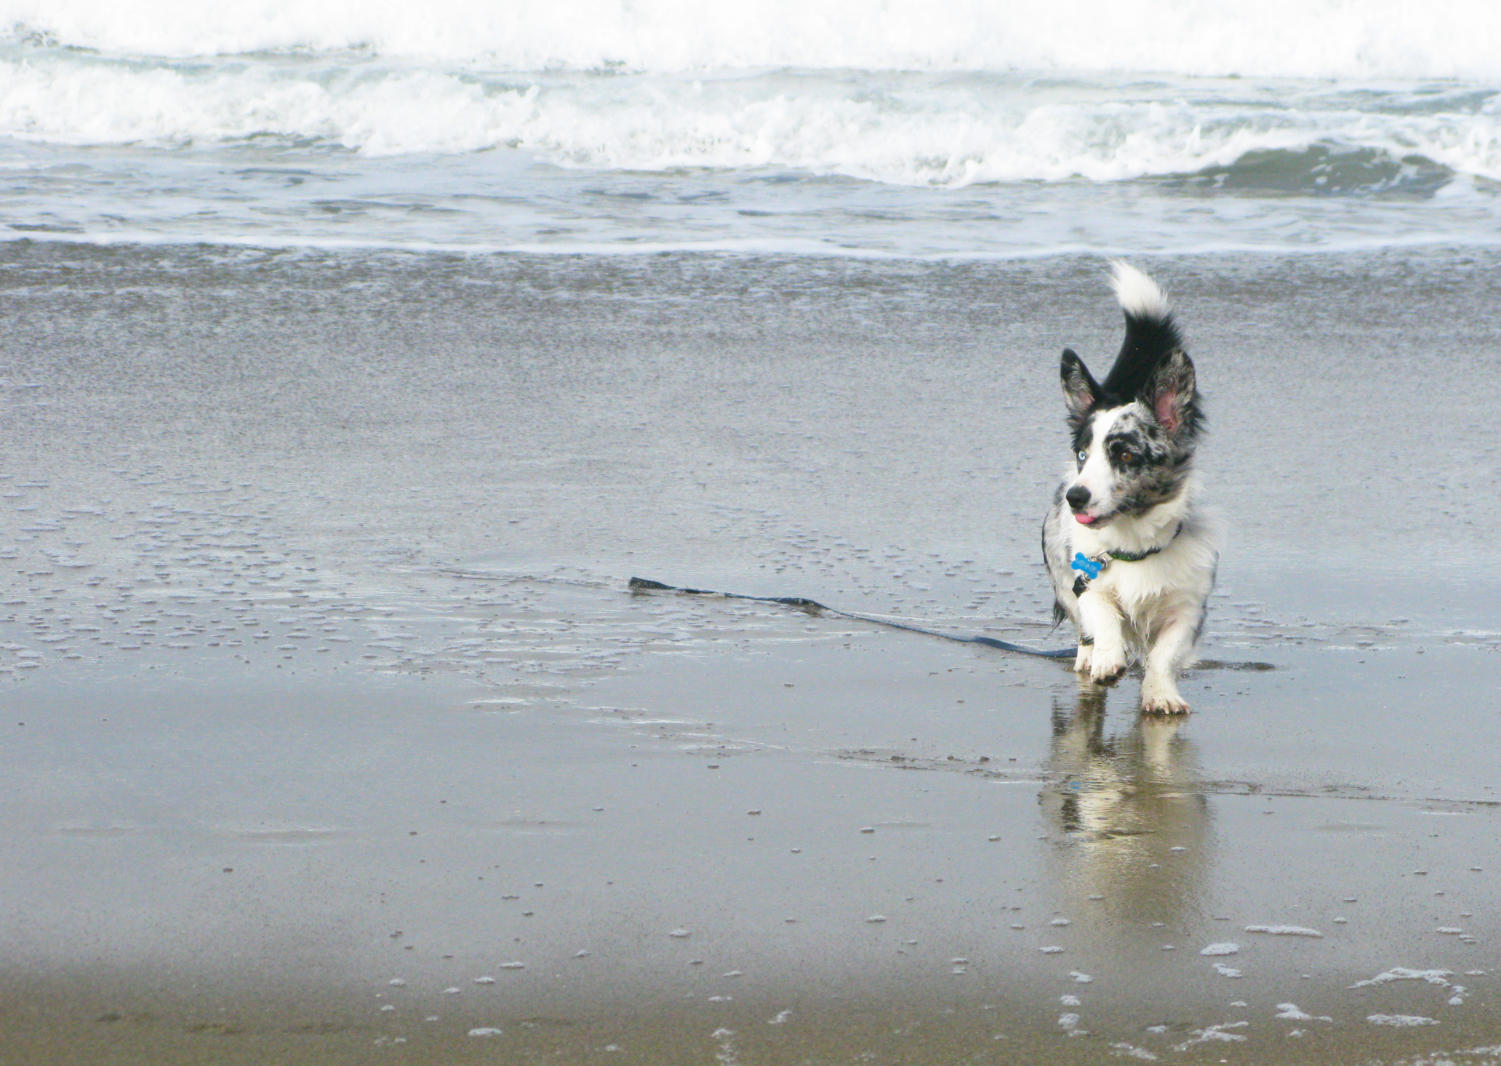 A+blue+merle+corgi+jogs+back+after+dipping+their+paws+in+the+ocean.